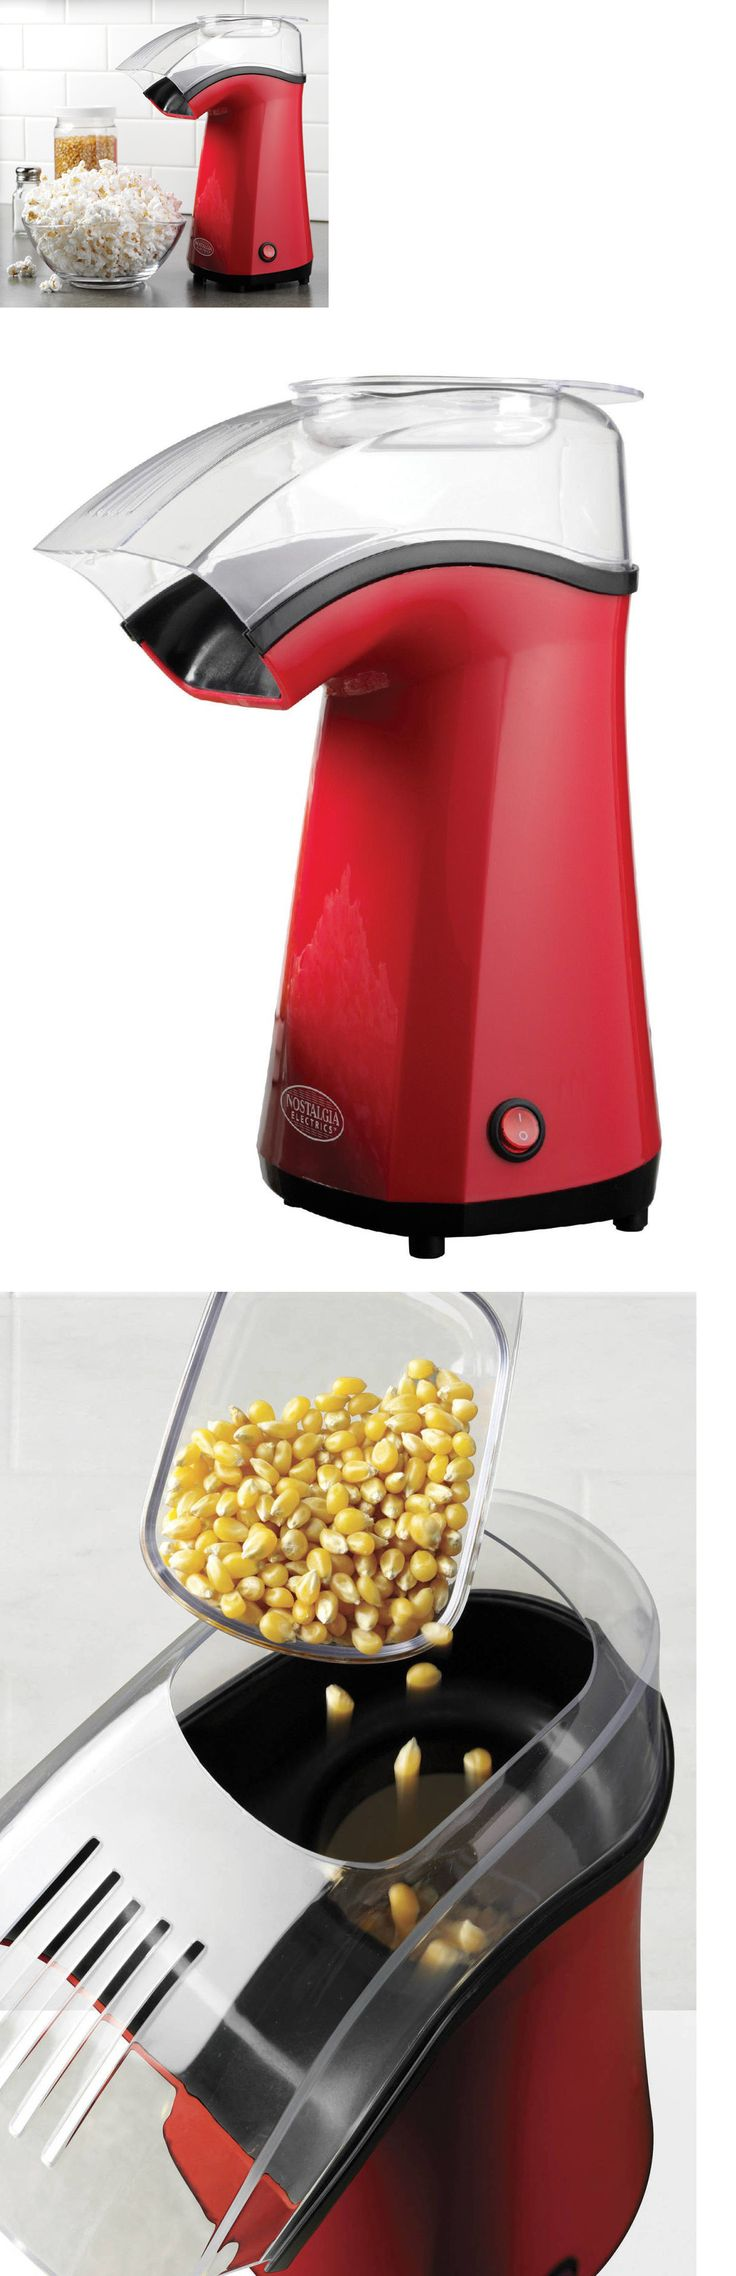 Popcorn Poppers 66752: Hot Air Popcorn Maker ~ New Corn Popper Machine ~ Nostalgia Electrics Aph200red -> BUY IT NOW ONLY: $37.79 on eBay!